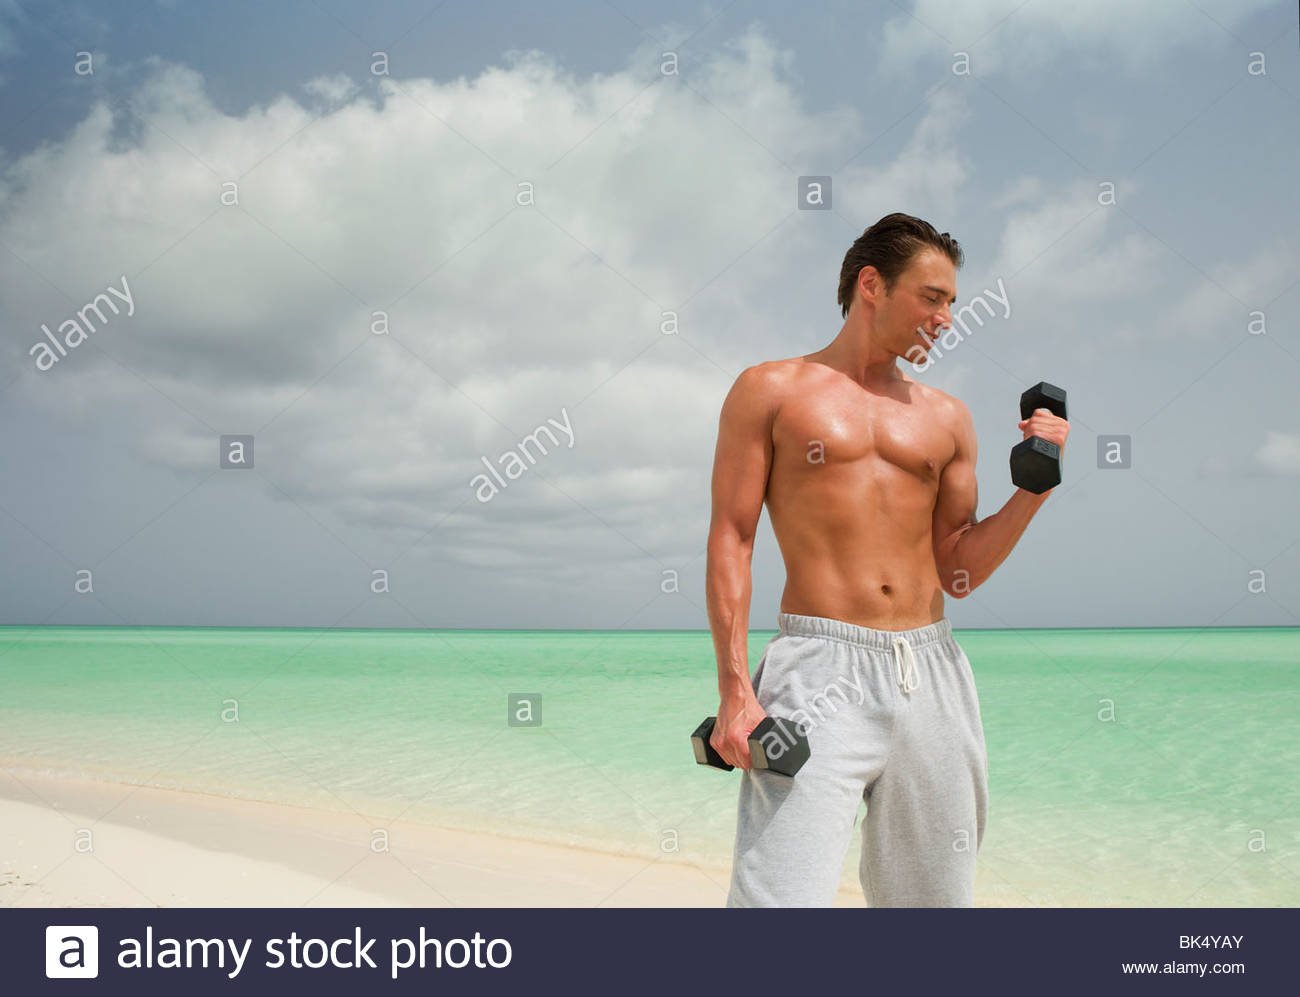 Man on beach doing biceps curls with dumbbells - Stock Image